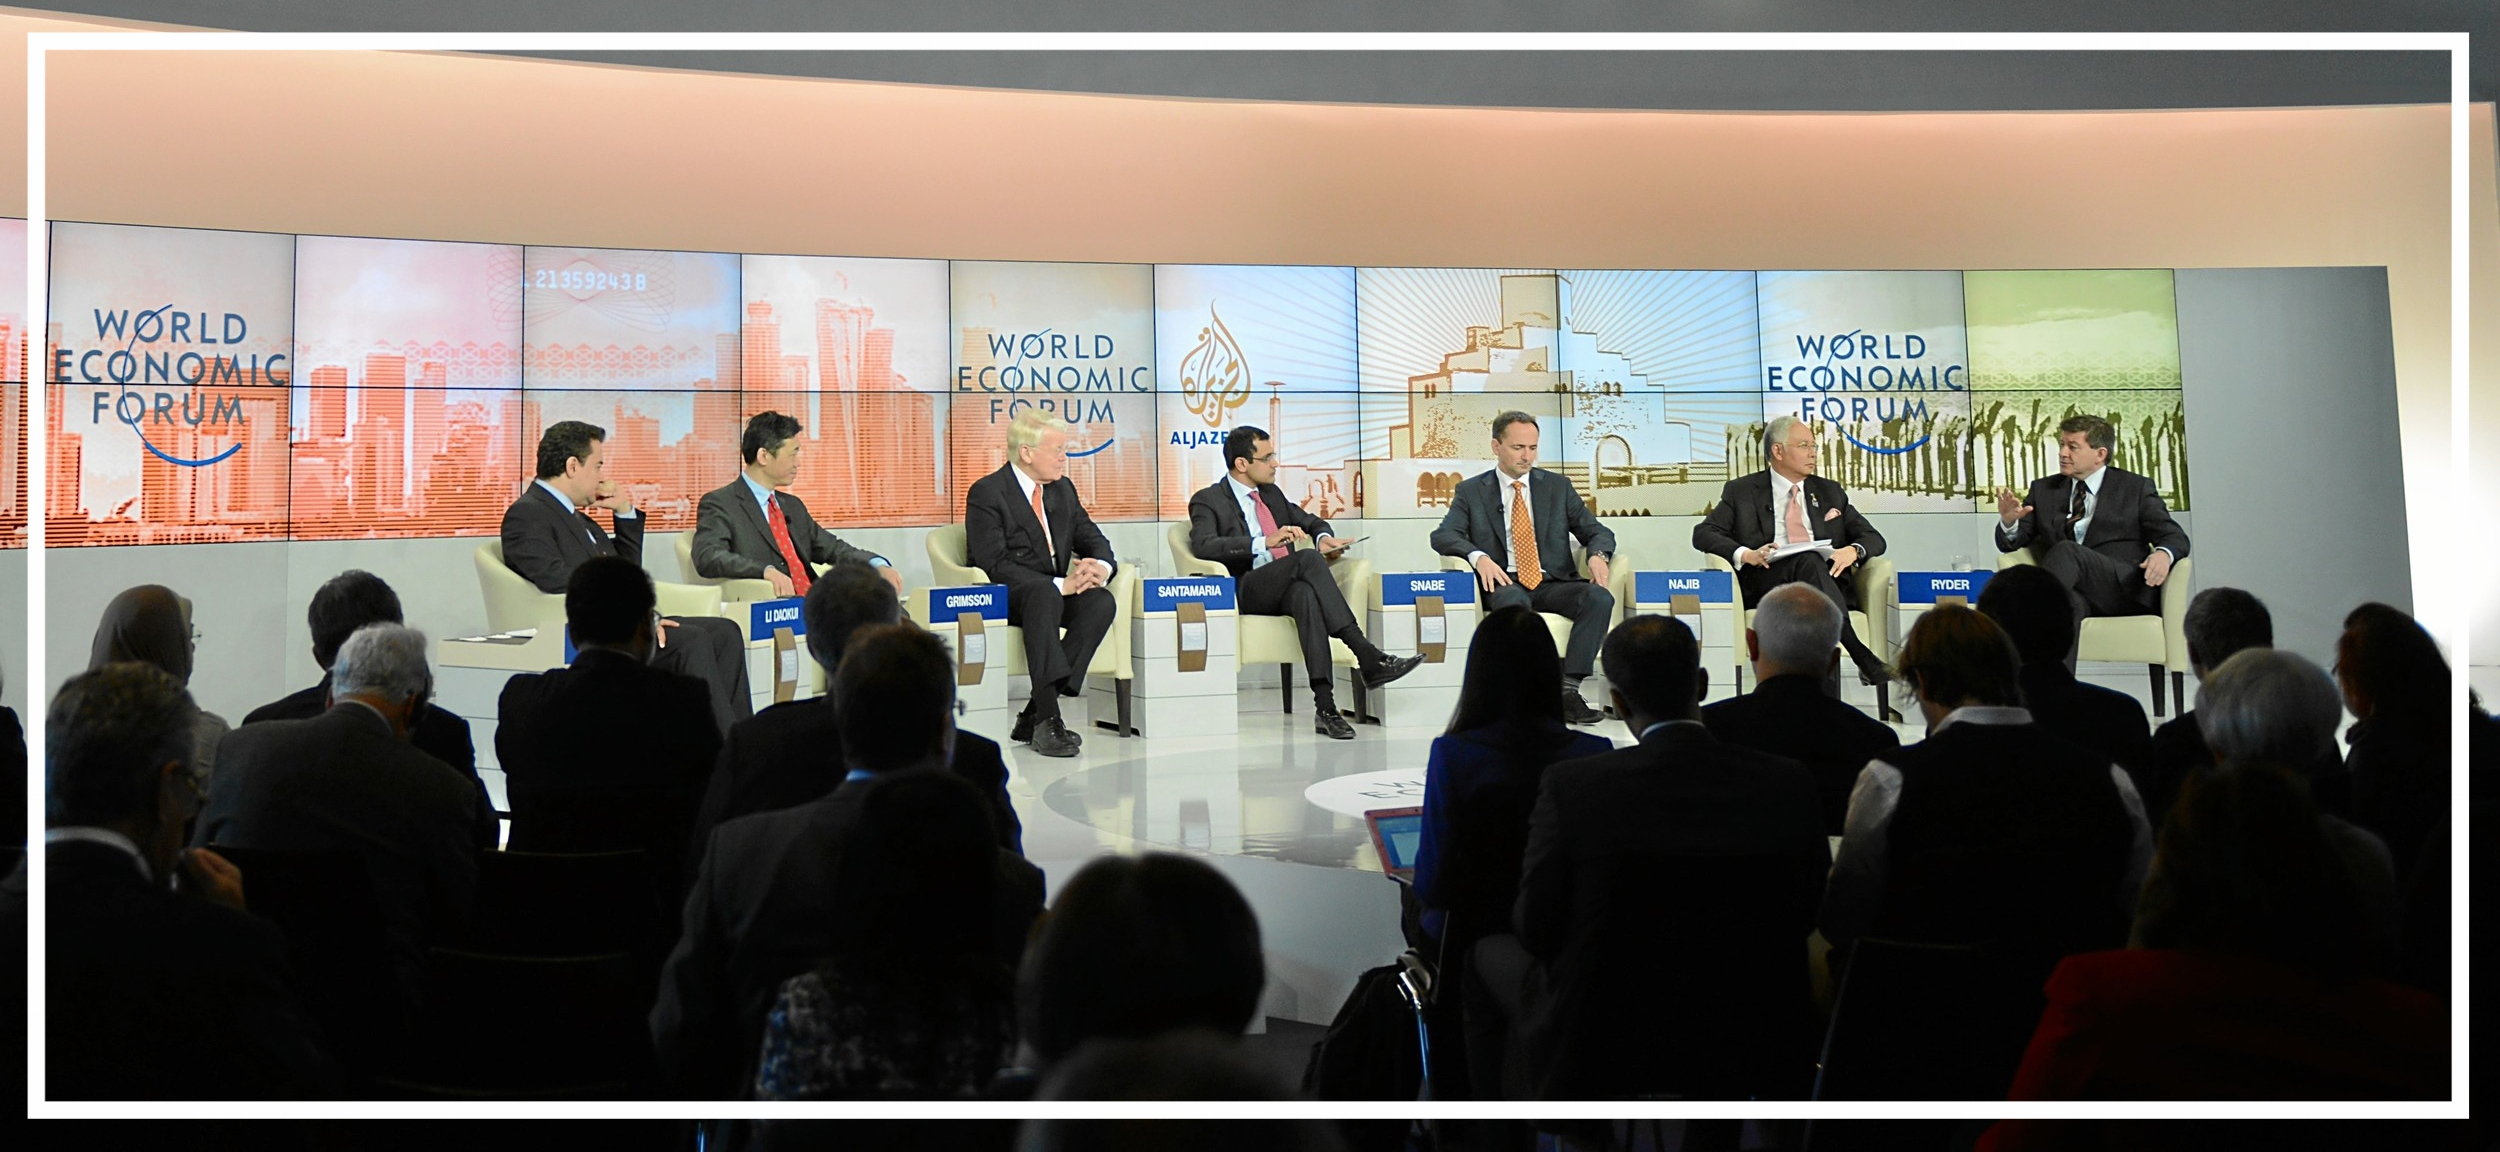 Moderating a televised panel at the World Economic Forum, (Davos, 2013)